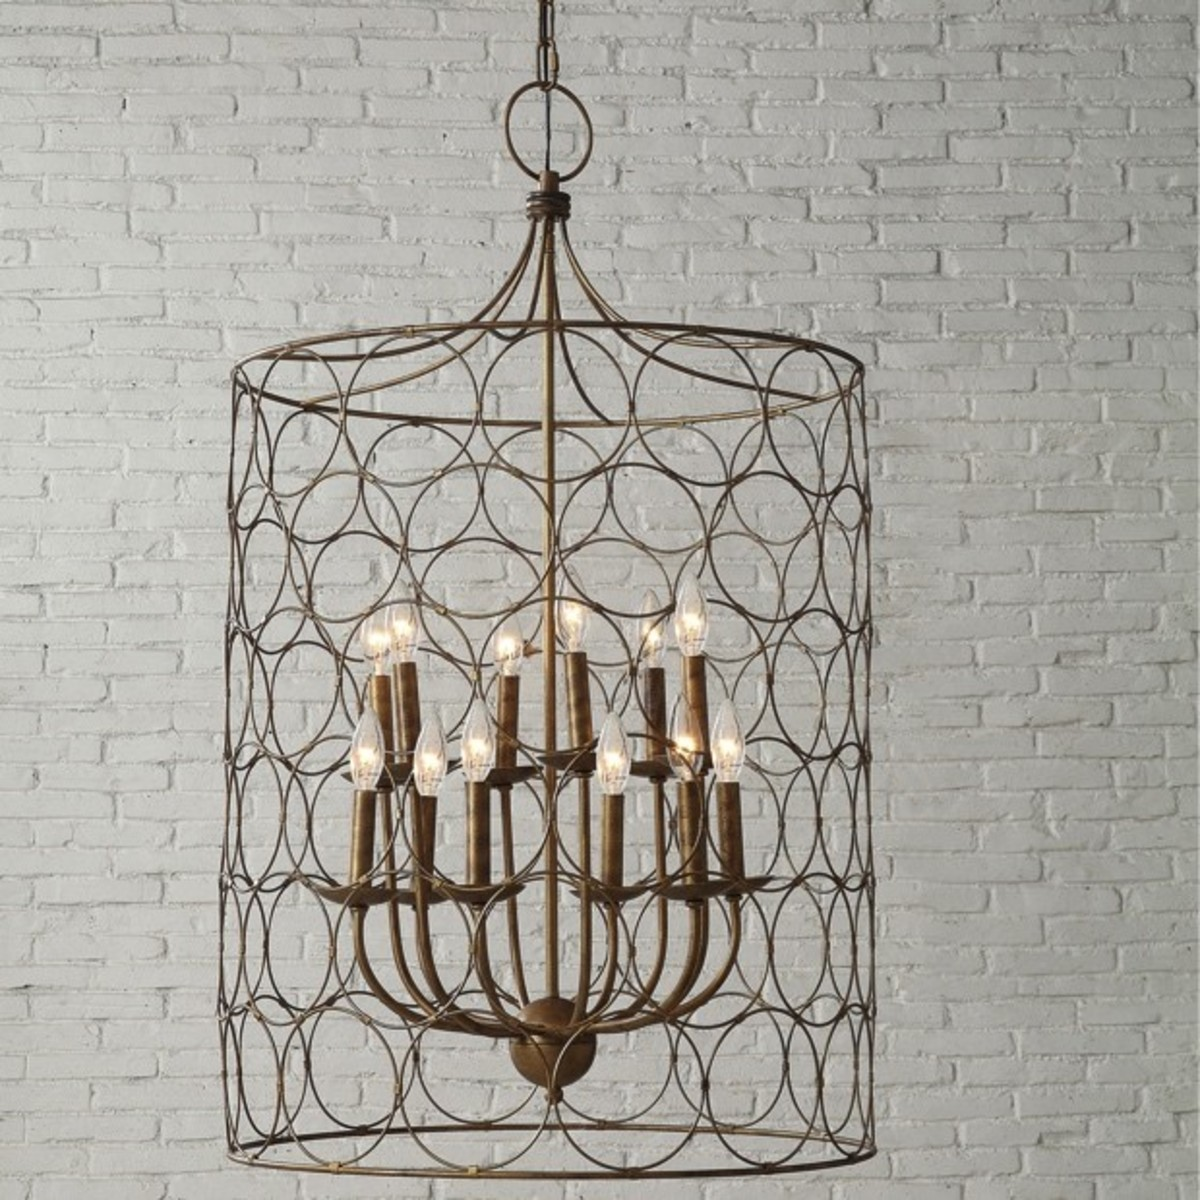 Add some rustic chic light, elegance, and charm to your home